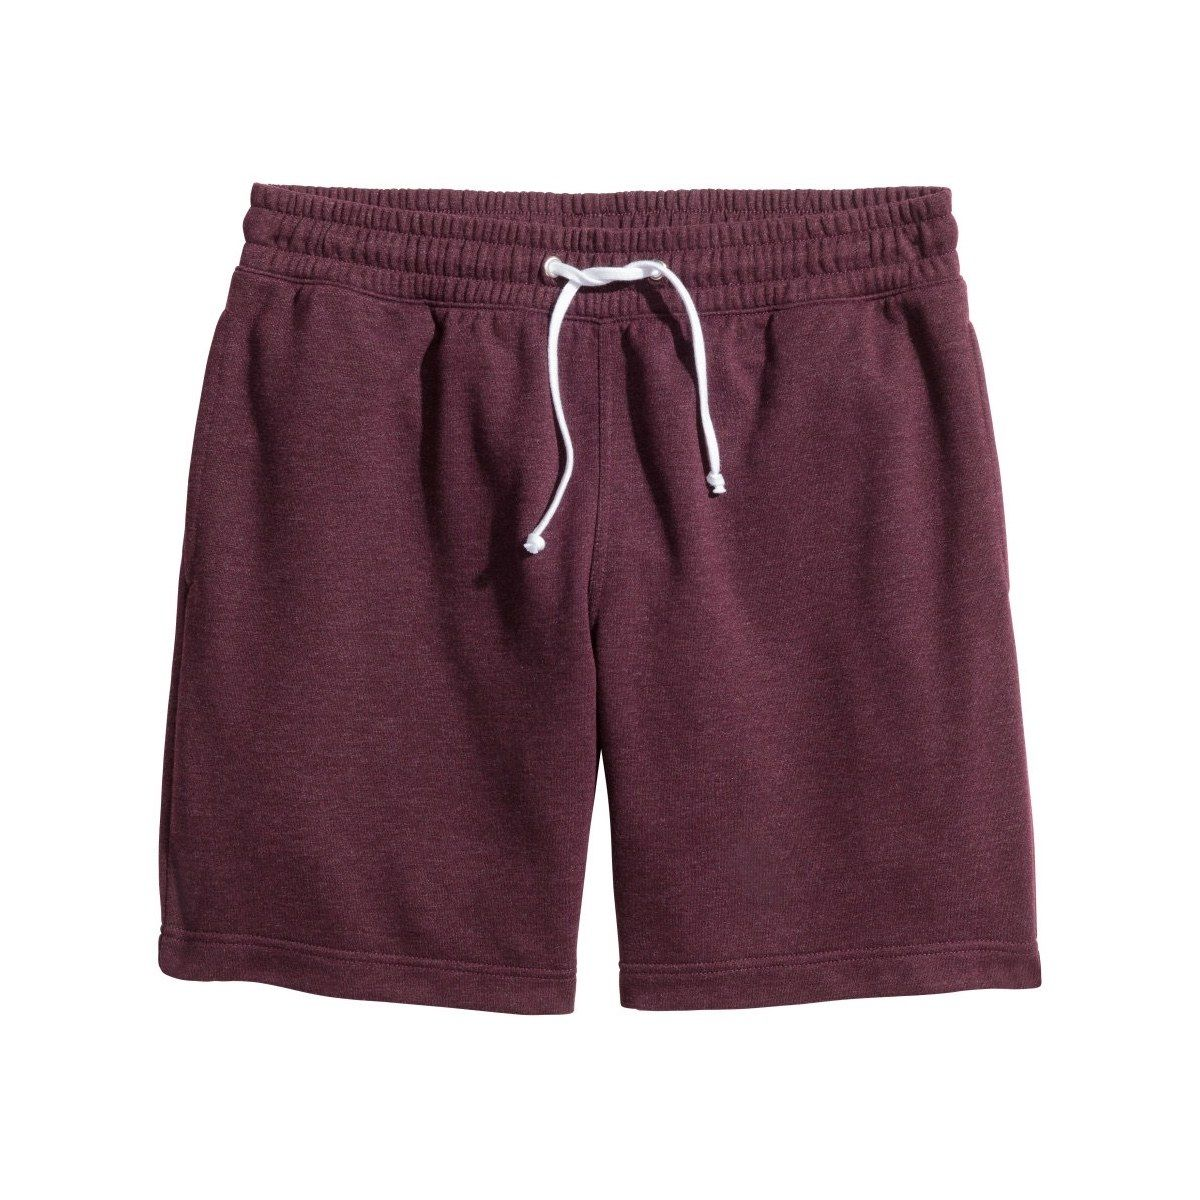 4f13e37efcfafb 10 Pairs of Jogger Shorts You Can Do Anything In